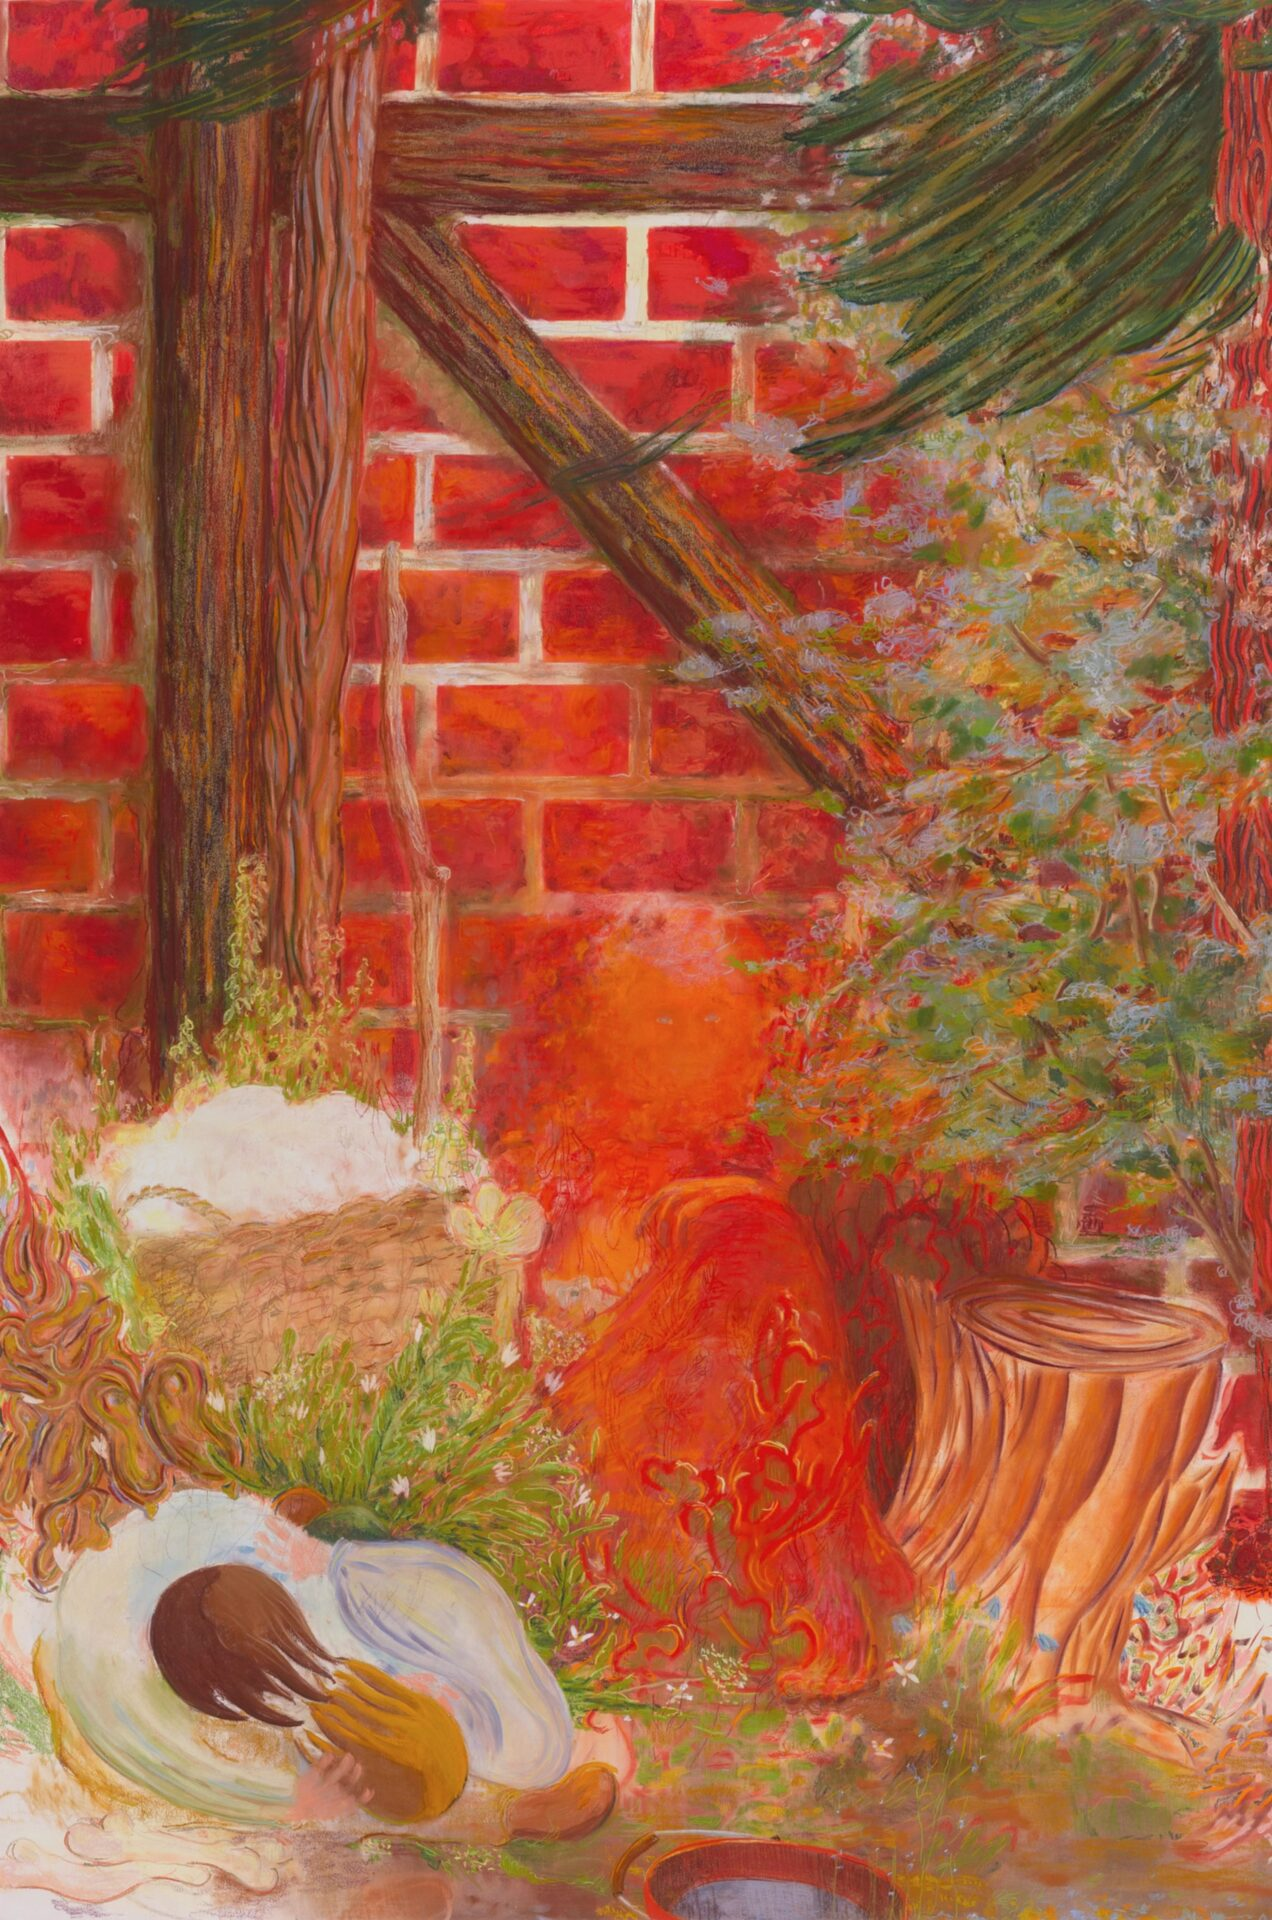 Nathan Hawkes in 'Real Worlds: Dobell Australian Drawing Biennial 2020'